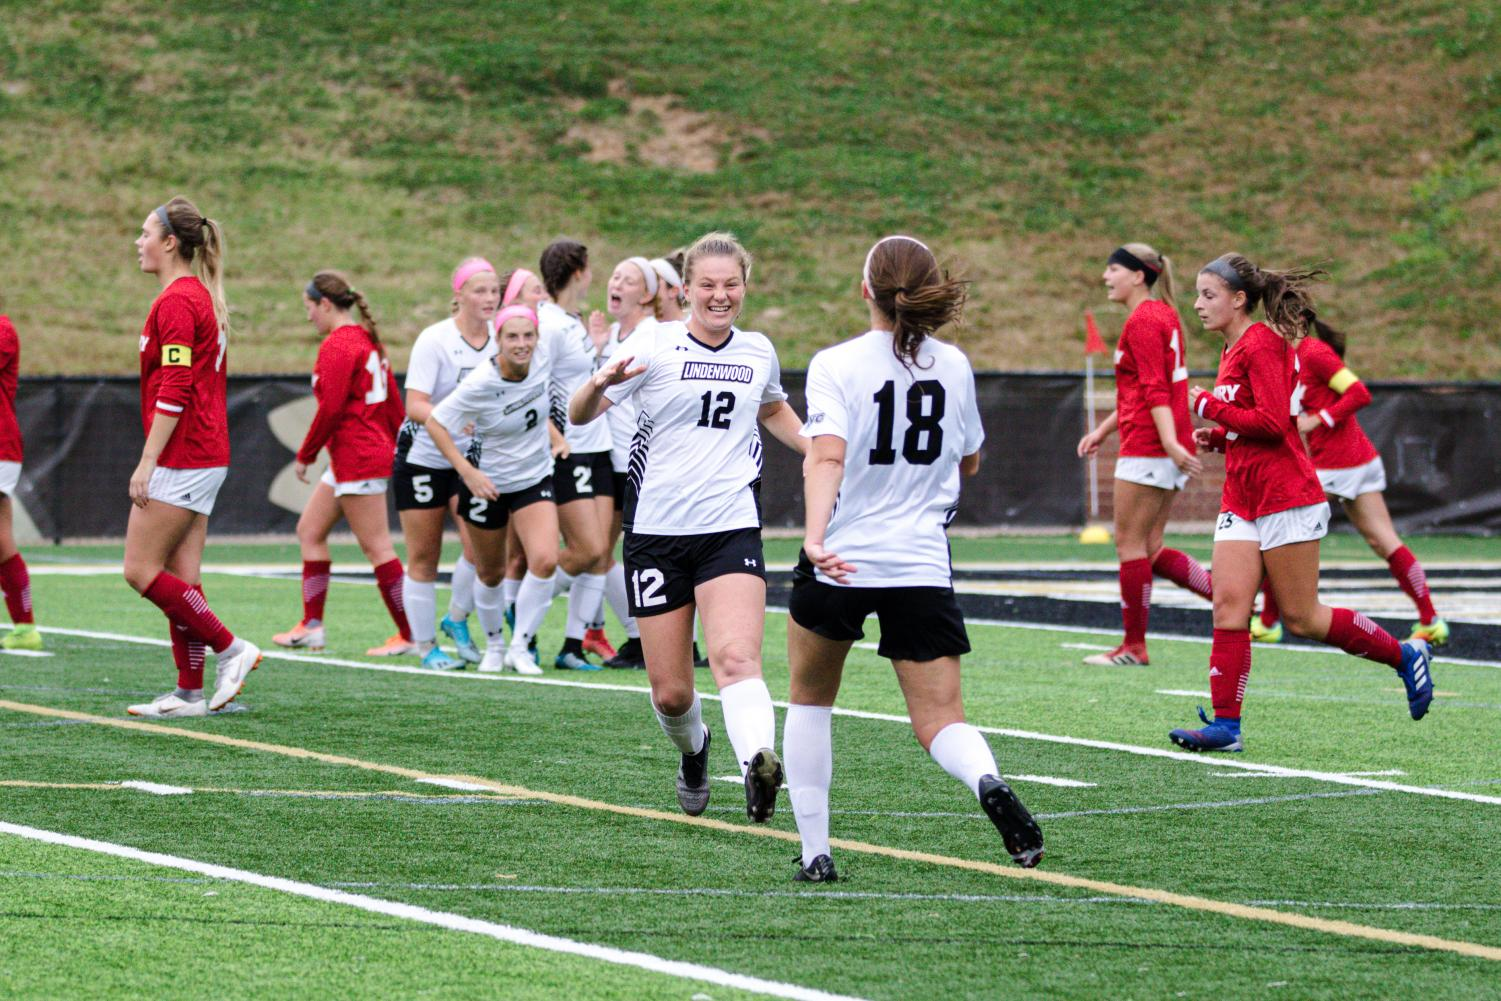 Lion's Jill Wipke (12) runs to celebrate with Alaina White after Lindenwood leads 1-0 against Drury Panthers. Photo by James Tananan Kamnuedkhun